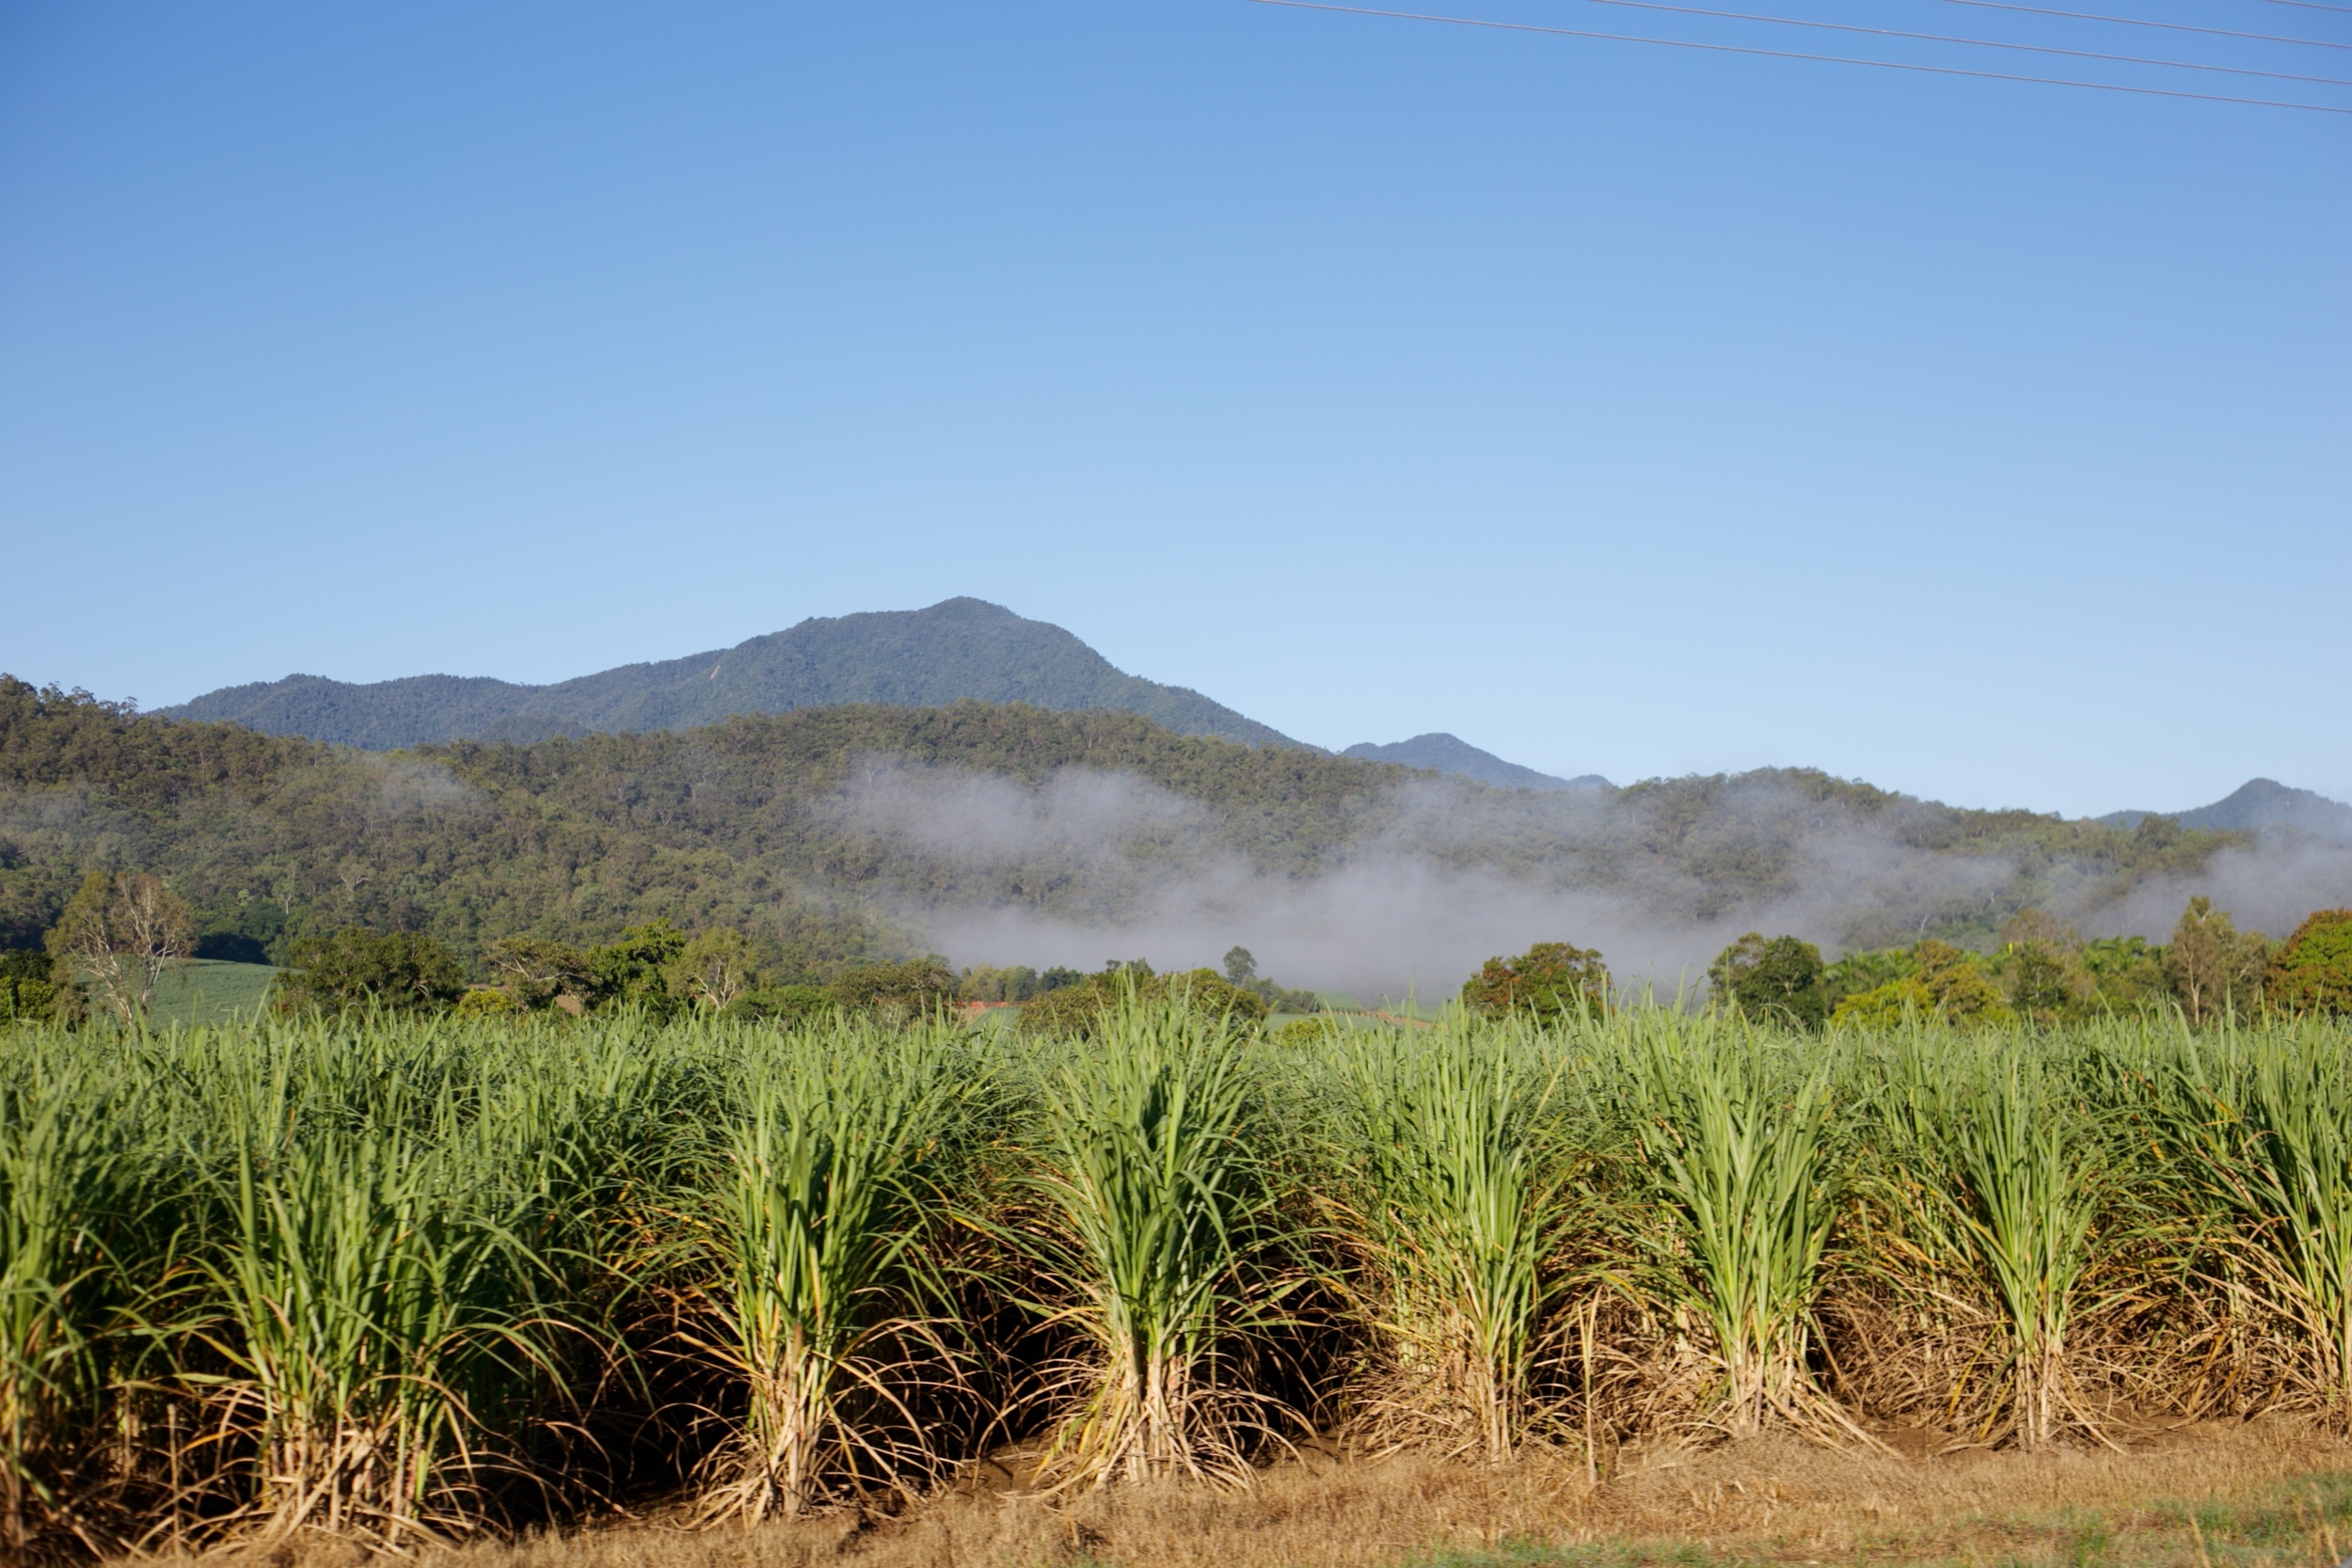 Sugar cane fields in Australia's tropical climate.